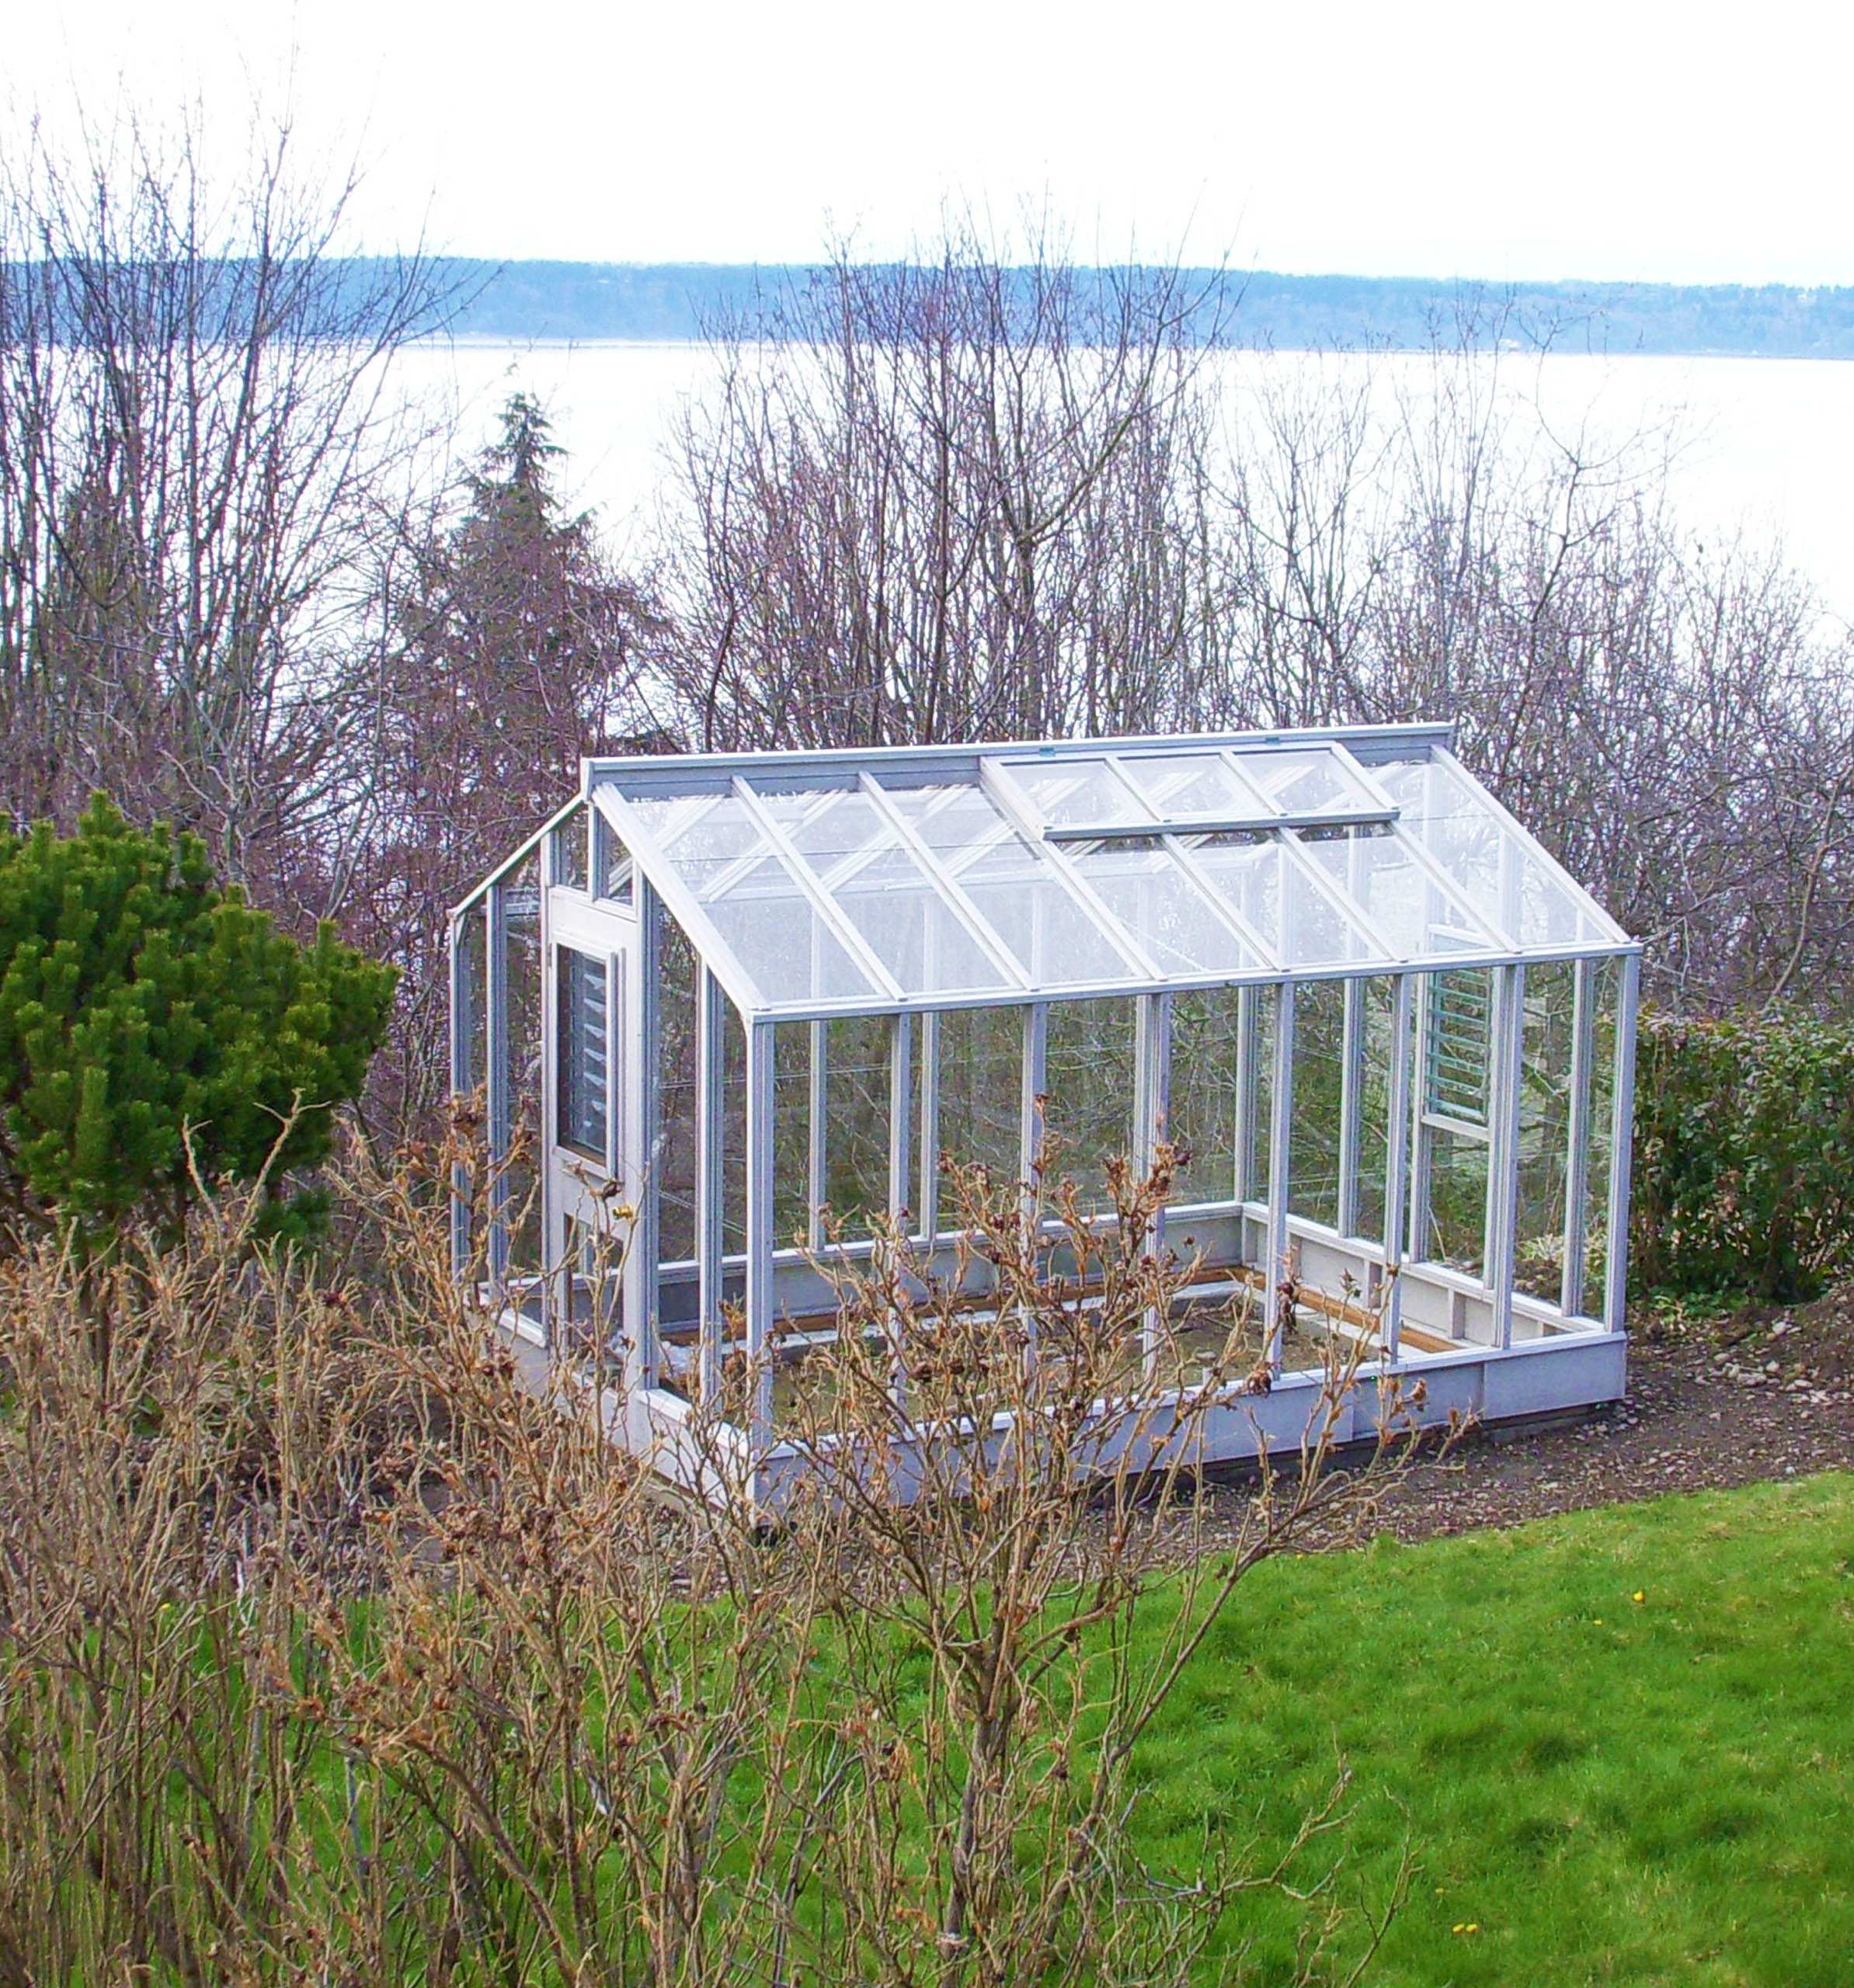 Deluxe Glass-to-Ground Greenhouse